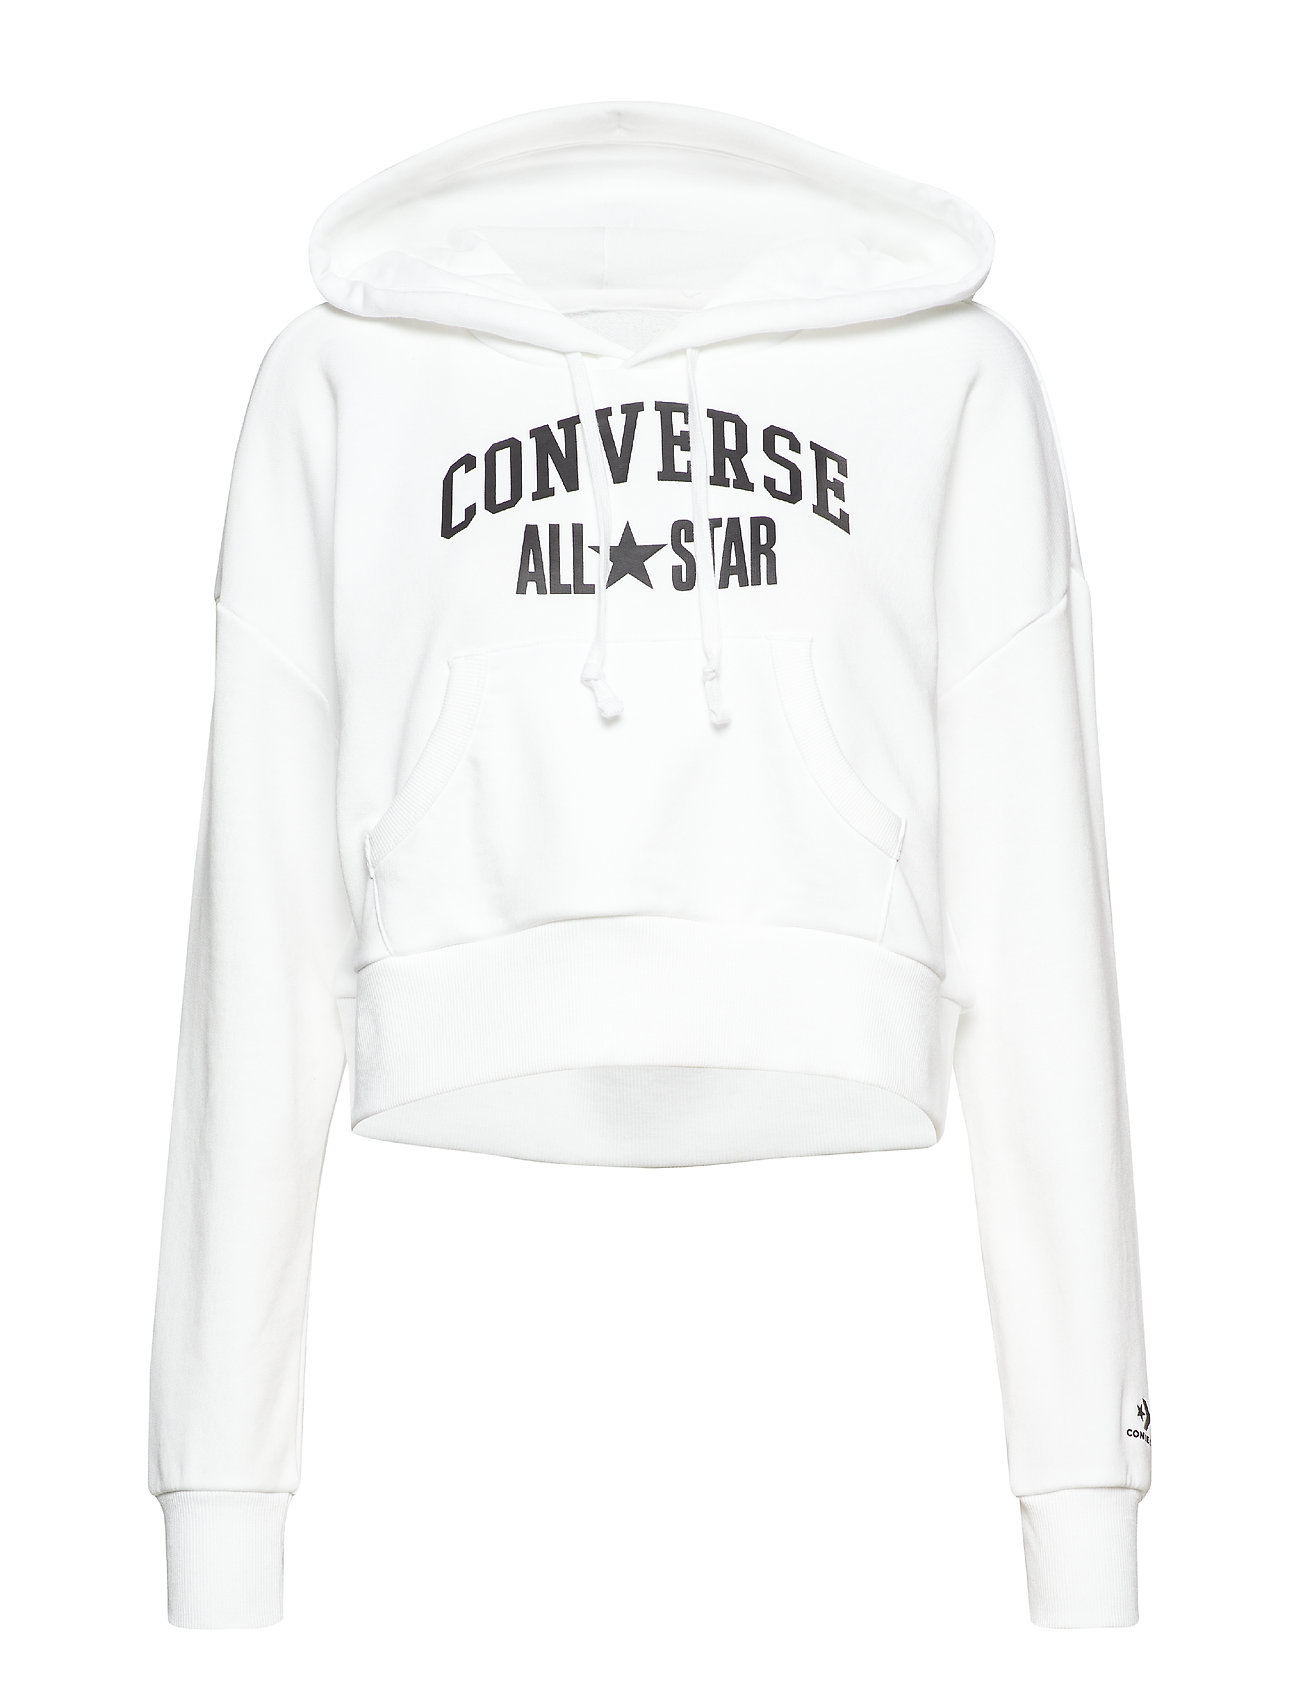 Converse Converse All Star Pullover Hoodie